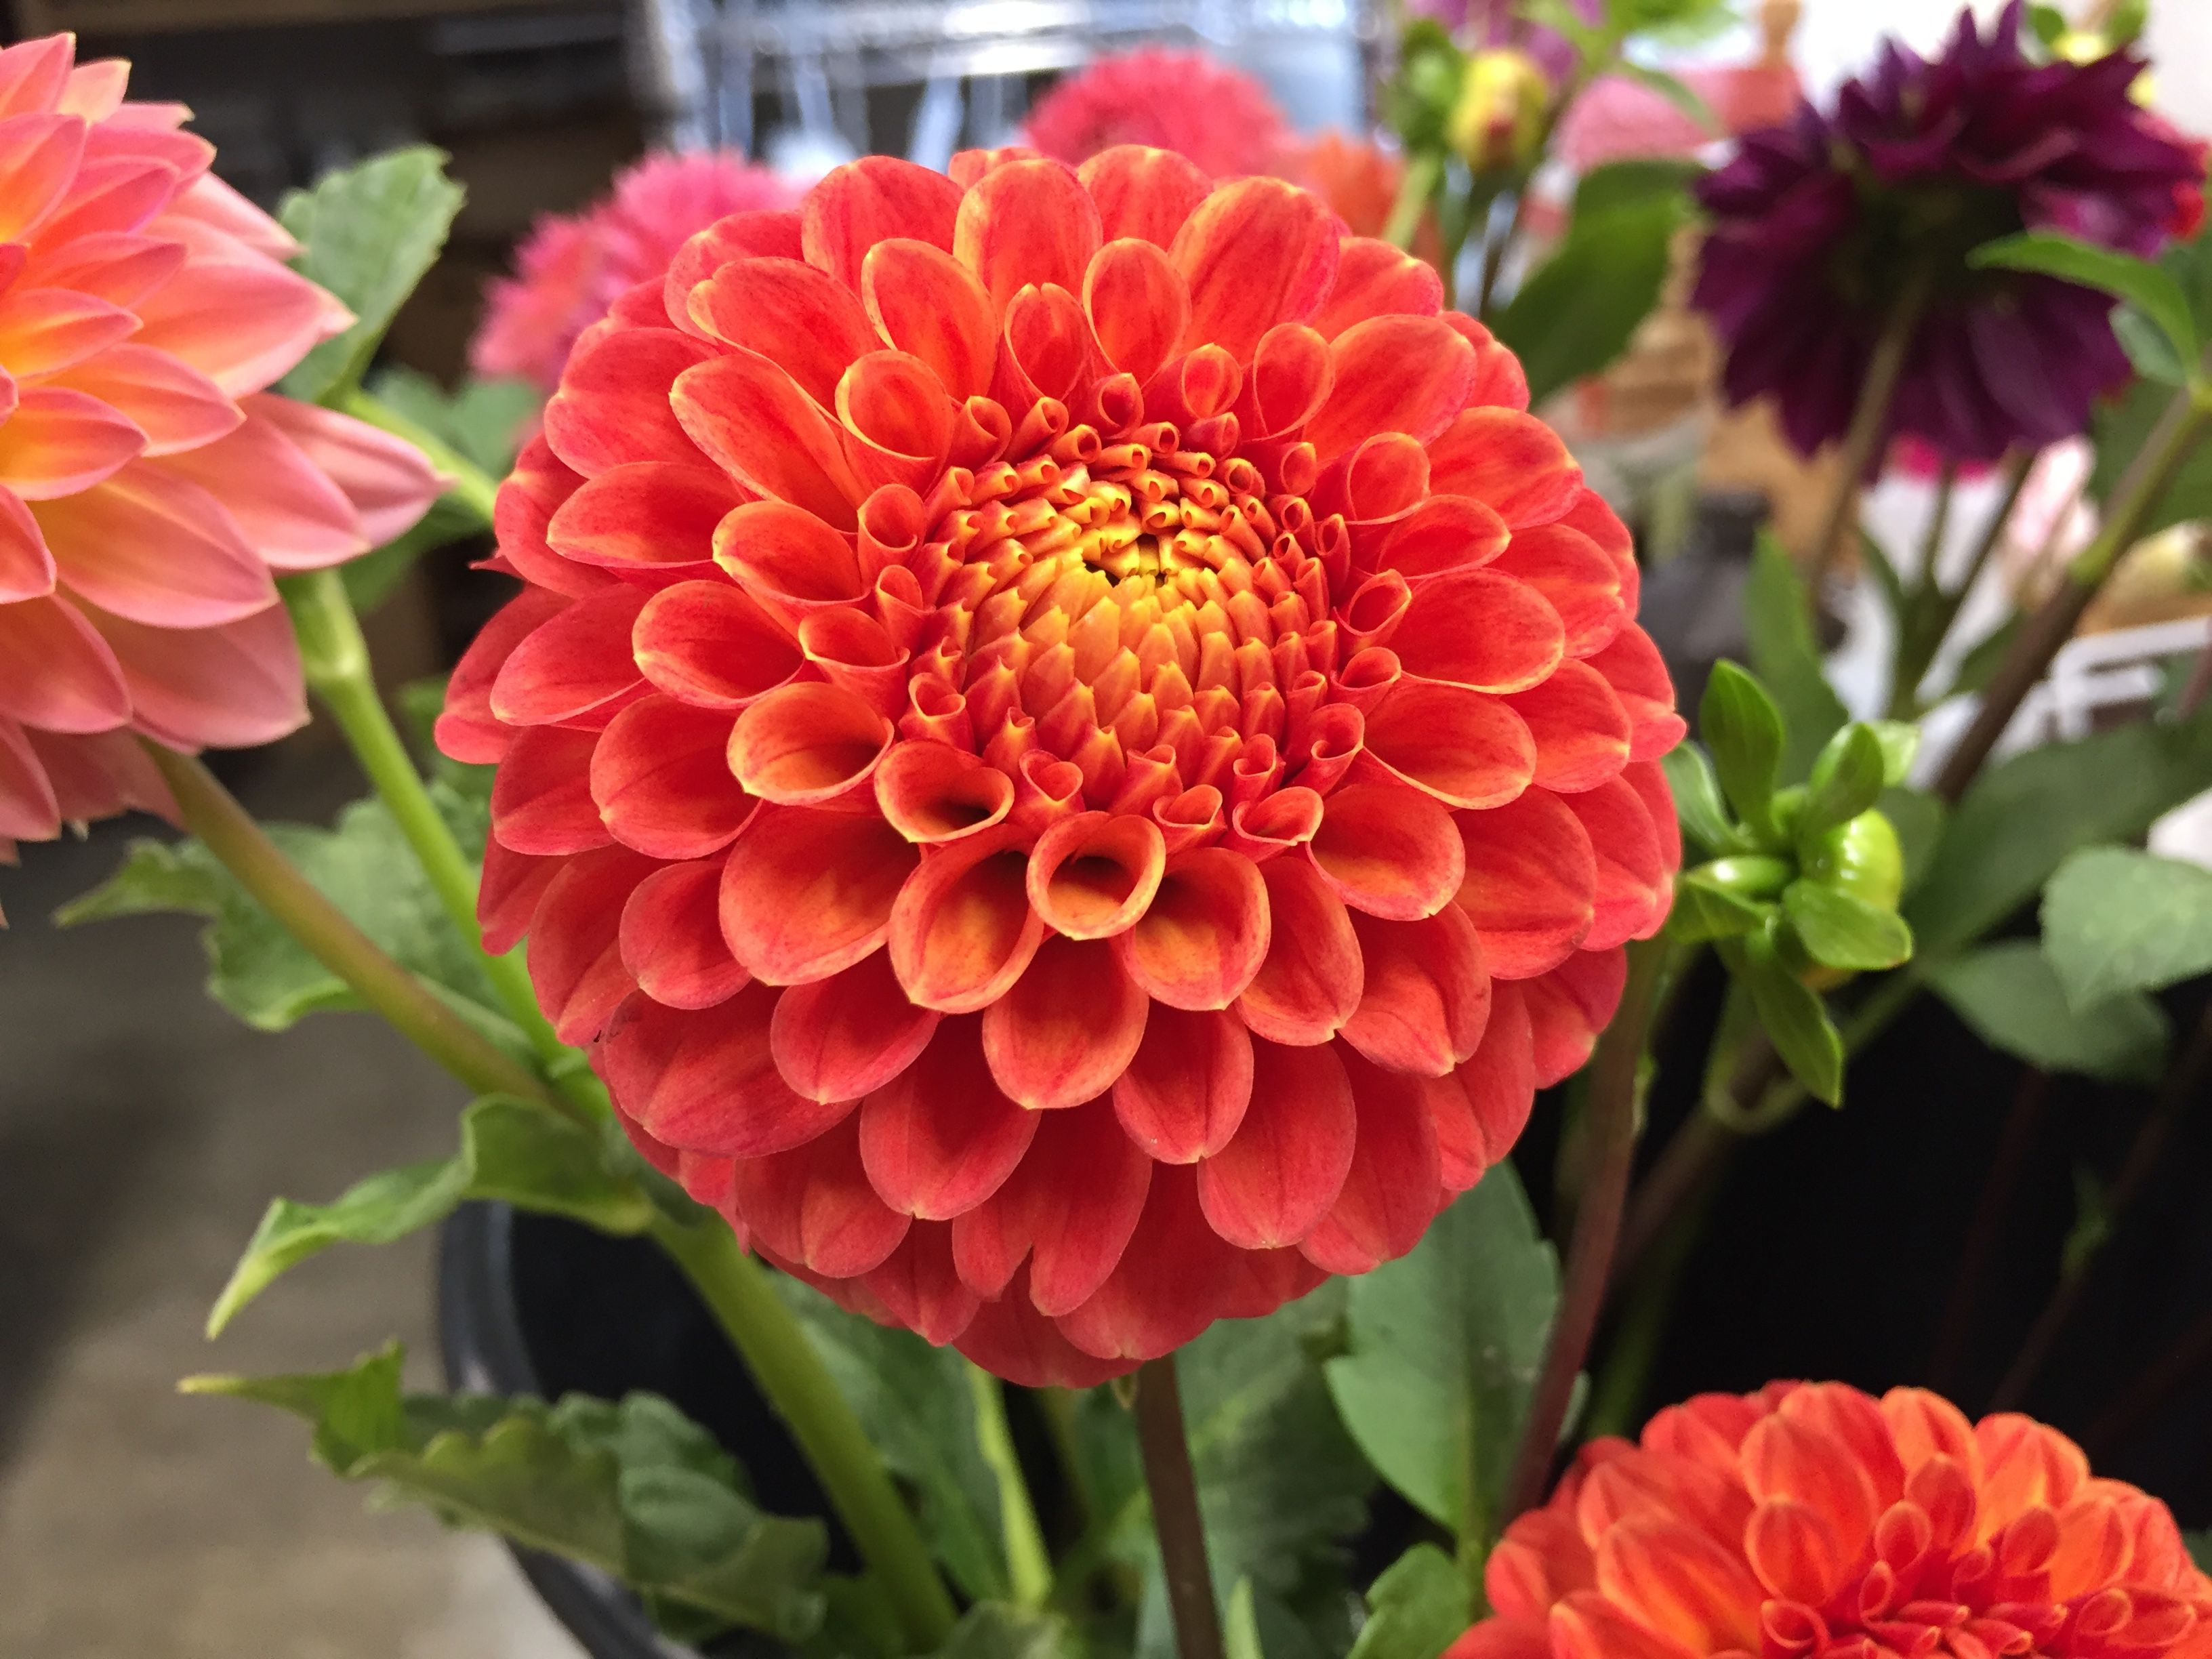 Camano Buz Has A Wonderful Orange Color This Formal Decorative Dahlia Produces 3 Blooms That Are Just The Right Size For Dahlia Growing Dahlias Flower Garden